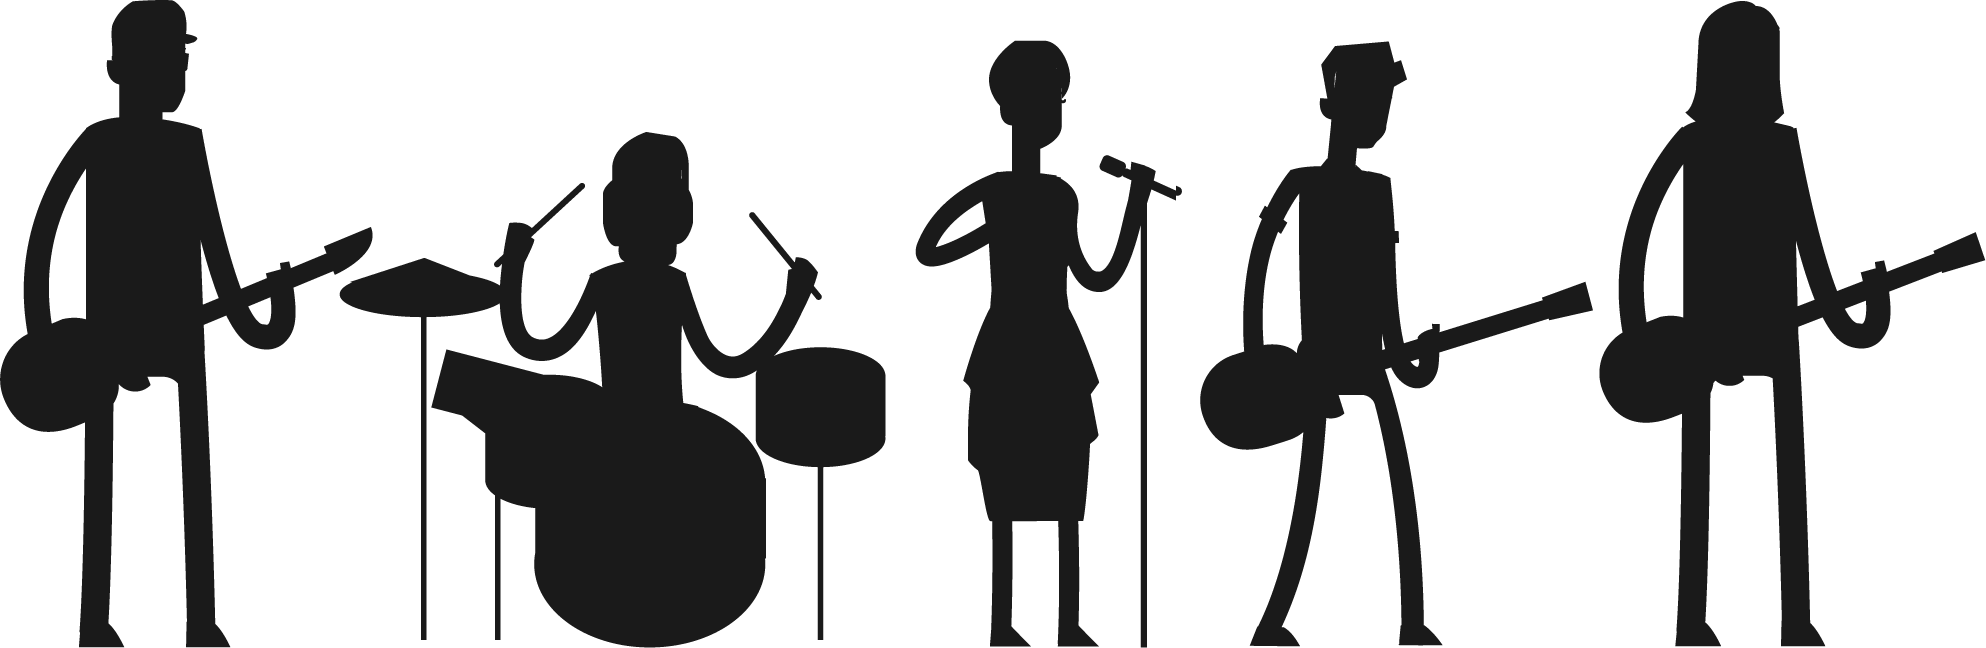 Rock band silhouette png. Pop transparent images pluspng